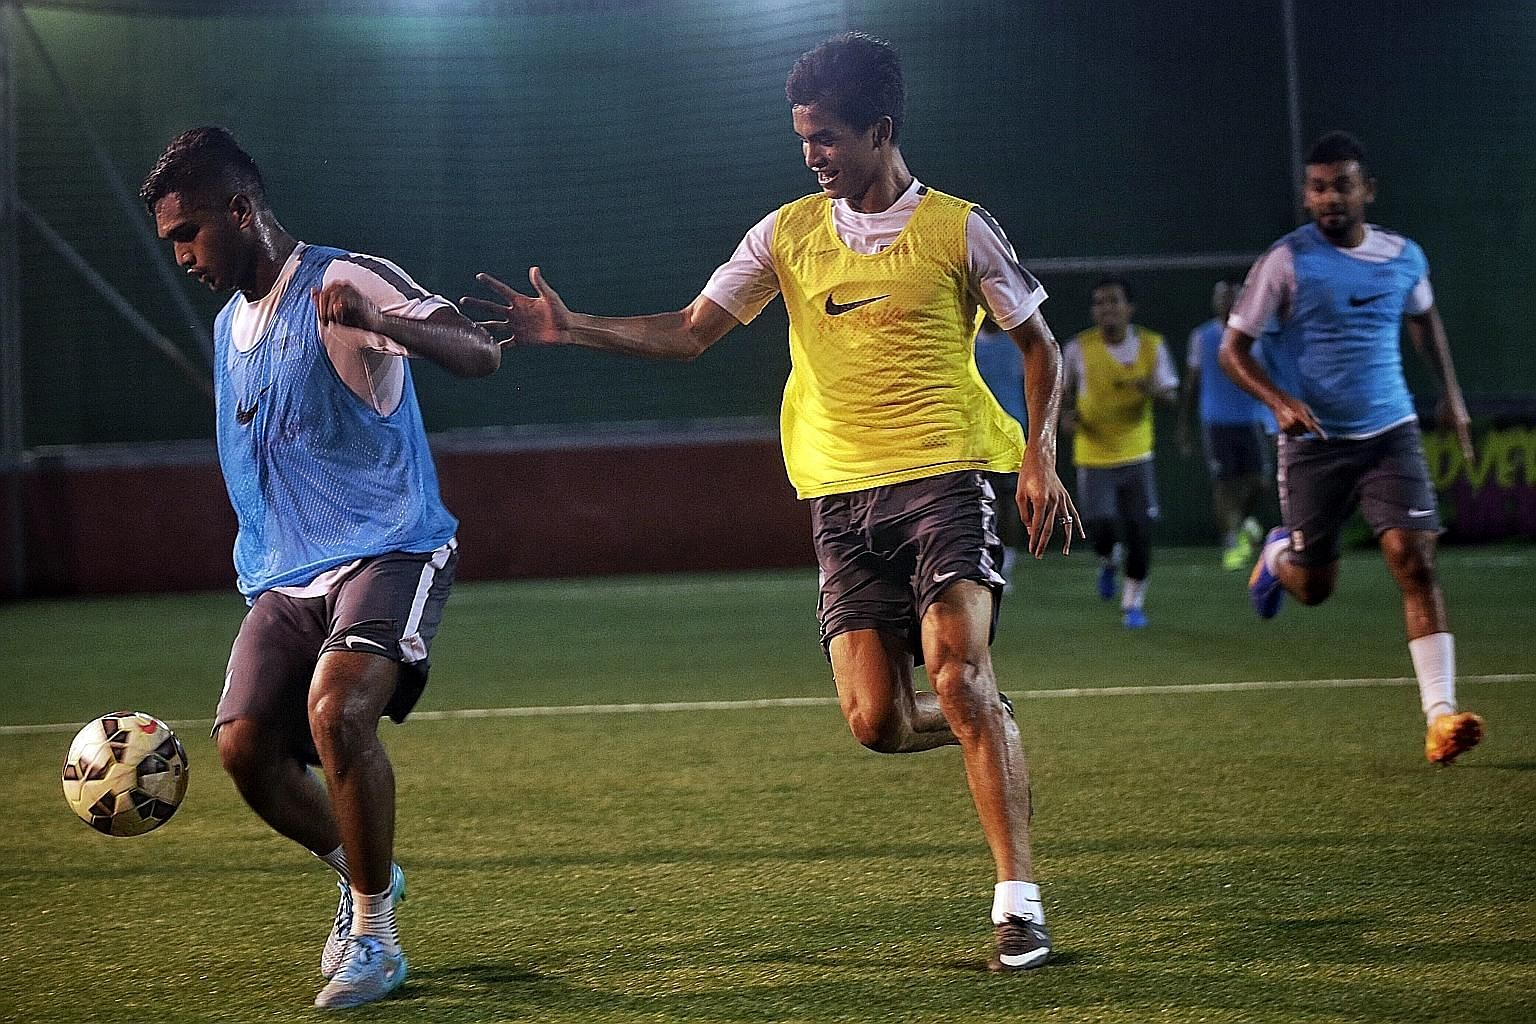 Safuwan Baharudin chases Hariss Harun for the ball during a futsal training match in Amara Hotel. The two key players will be available for the tie against Cambodia on Tuesday.